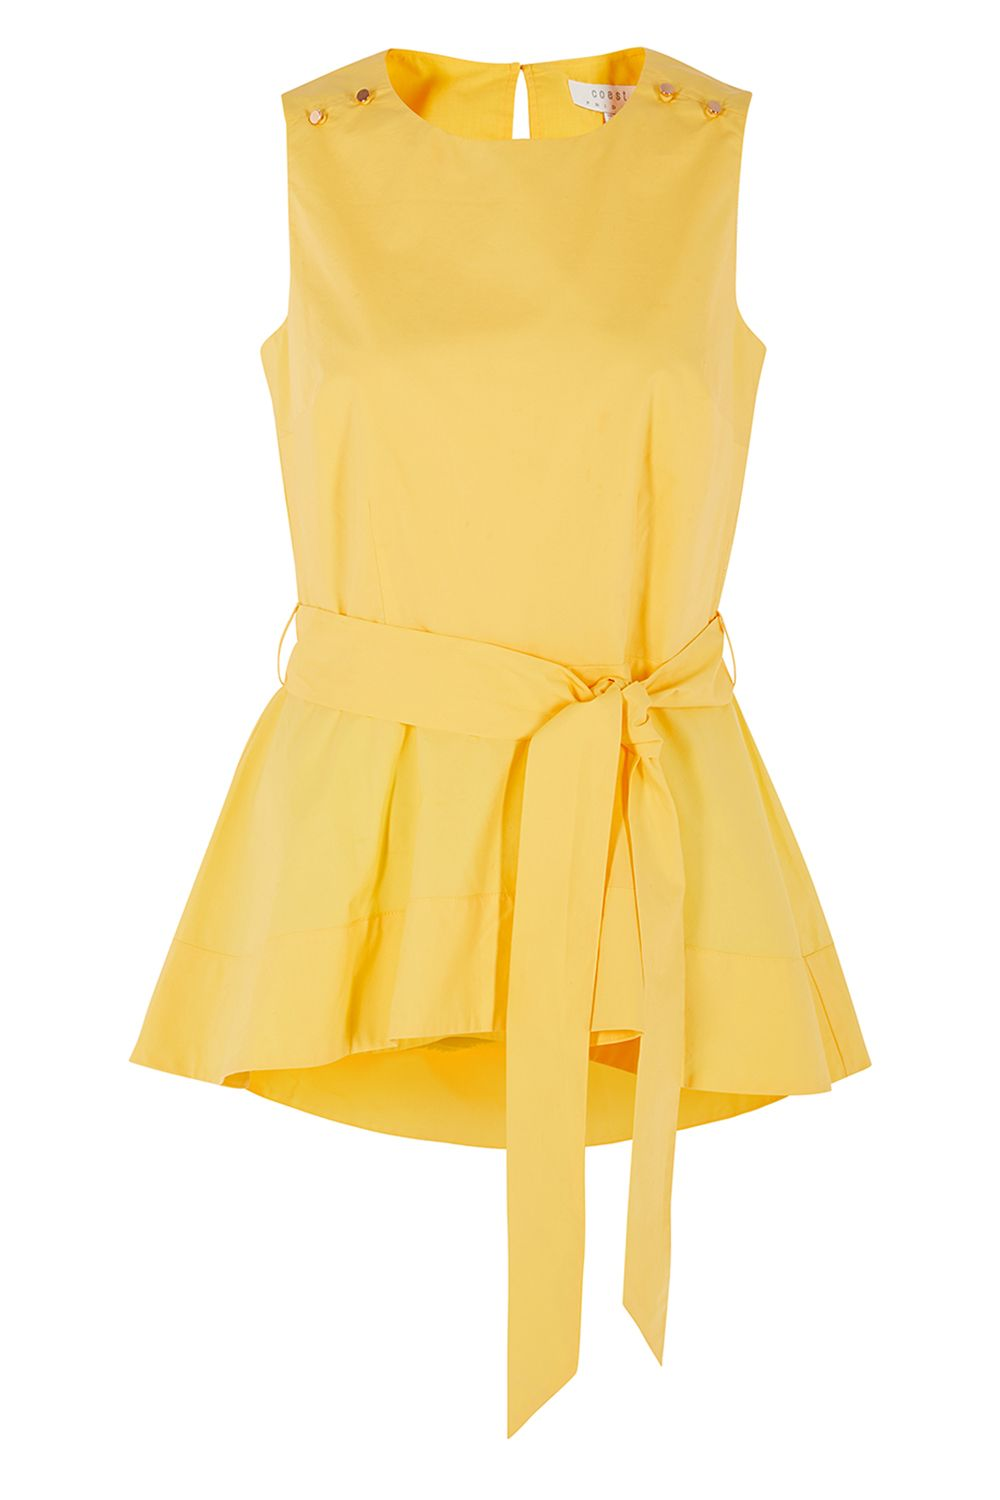 Coast Bella Peplum Top, Yellow